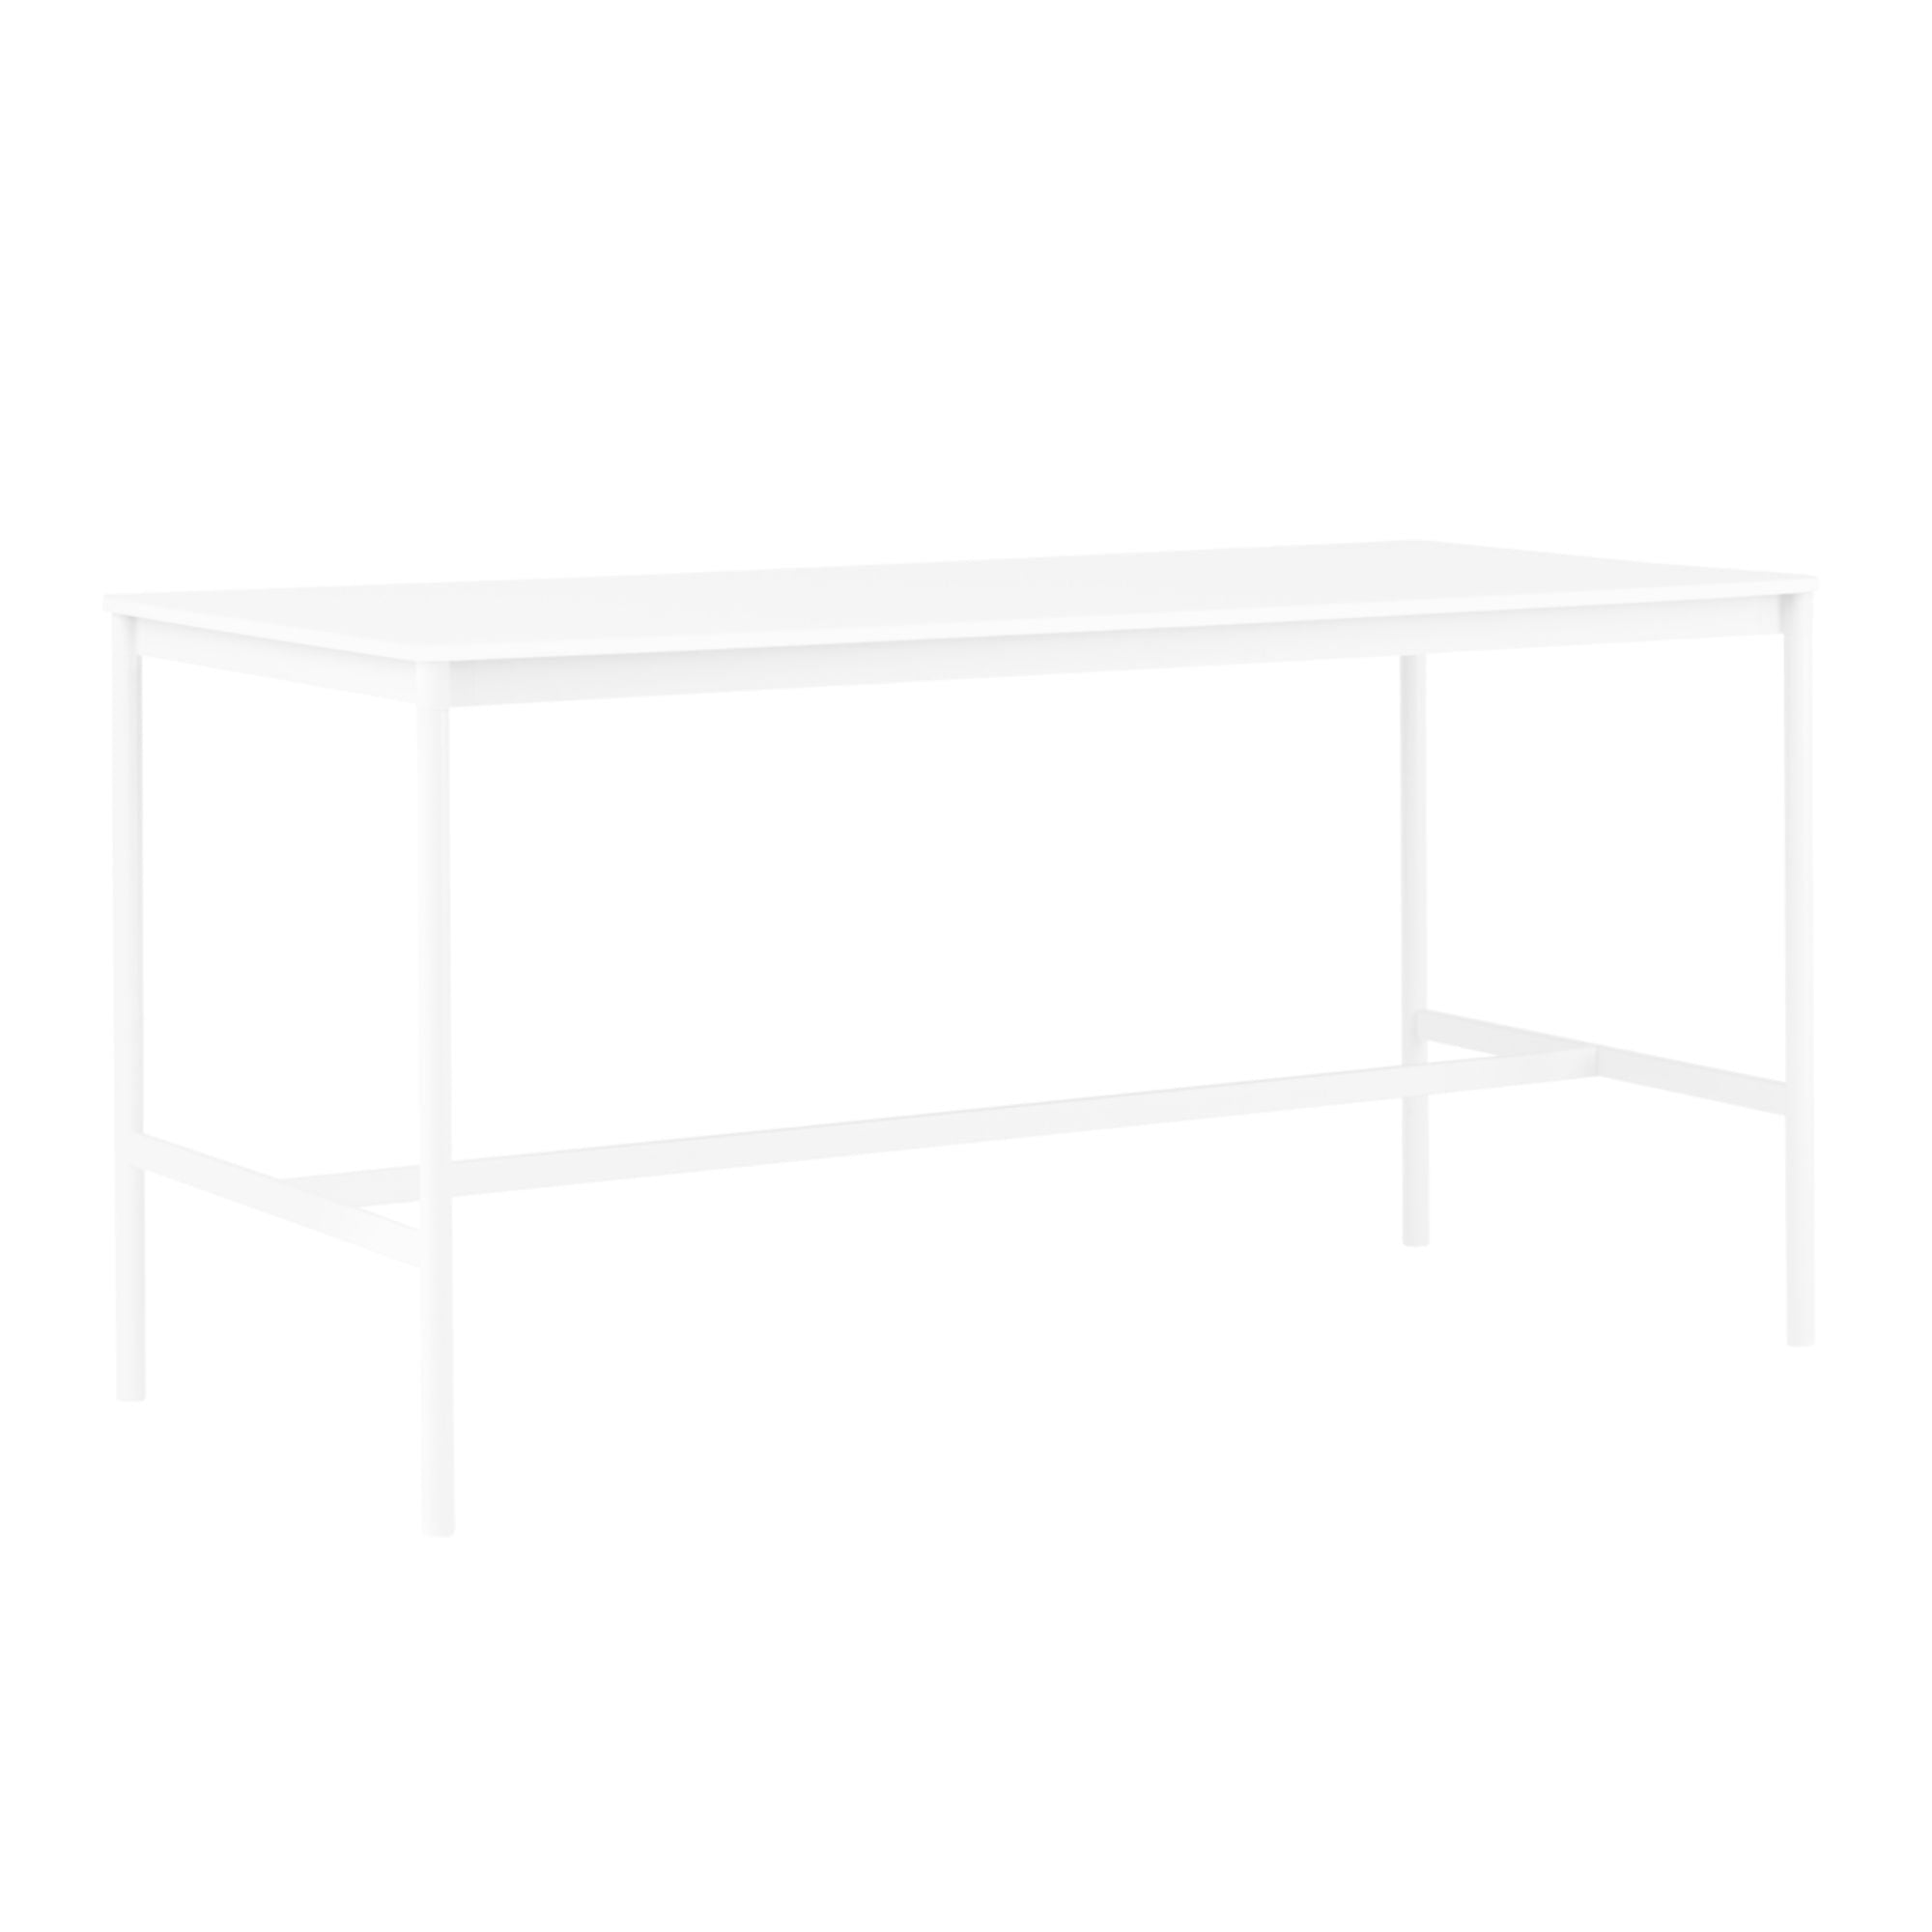 Muuto Base High Table 190x85 h:95cm , White Laminate/White ABS/White